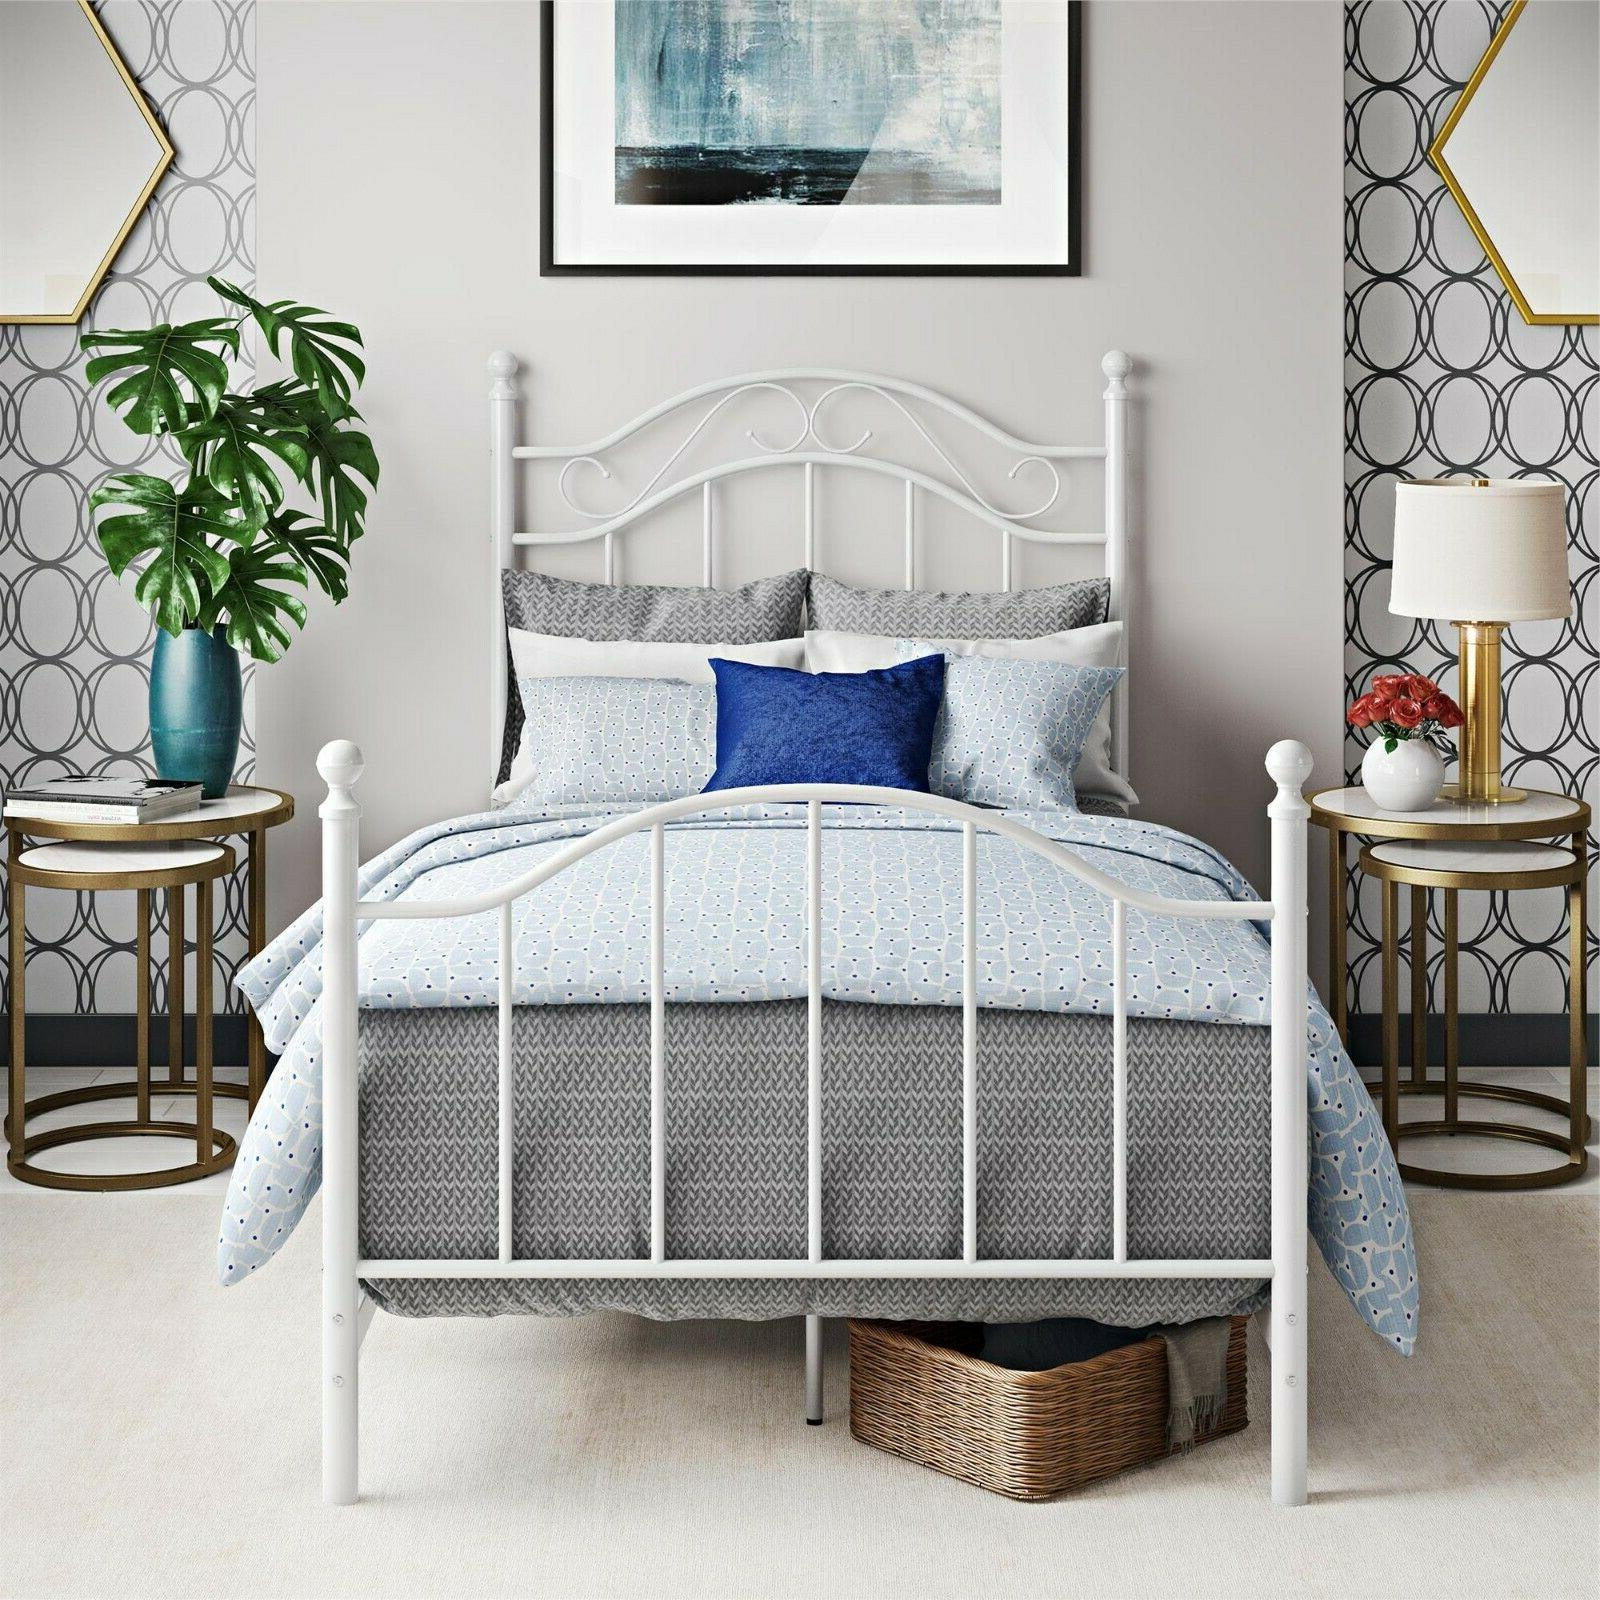 girl twin bed frame for kids boys